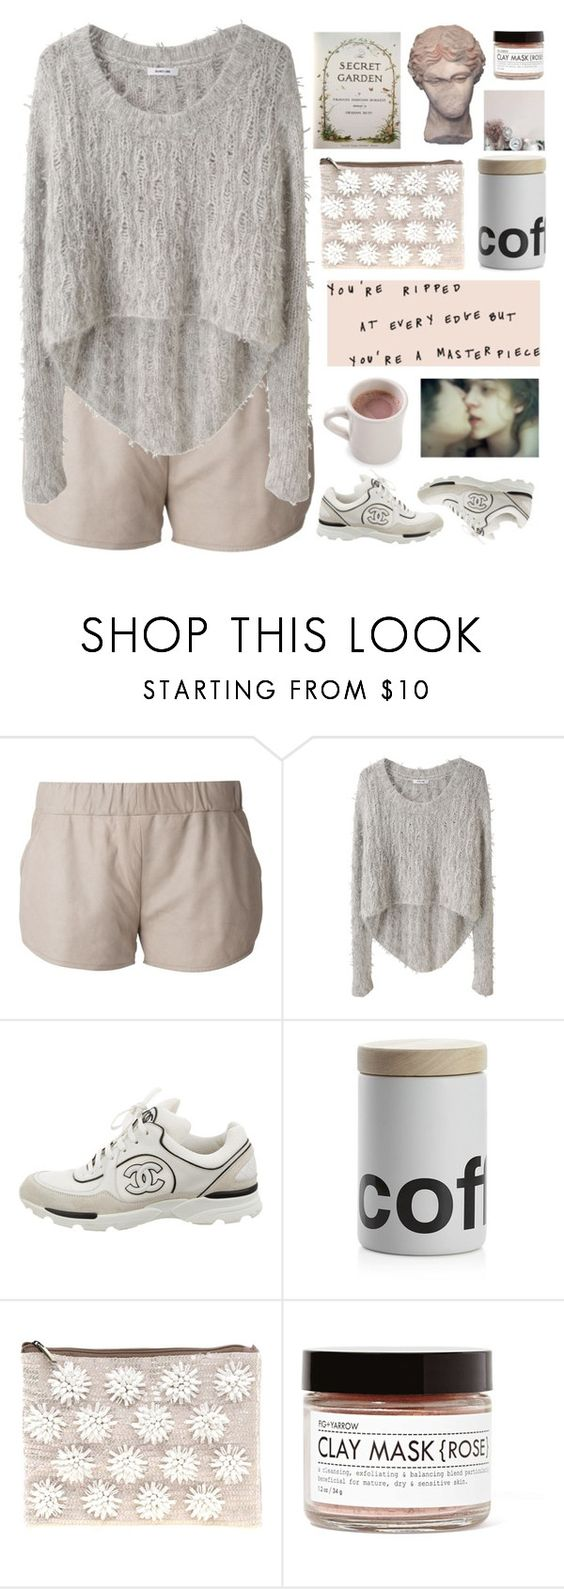 """""""Untitled #2460"""" by tacoxcat ❤ liked on Polyvore featuring Drome, Helmut Lang, Chanel, Crate and Barrel, ASOS and Fig+Yarrow"""